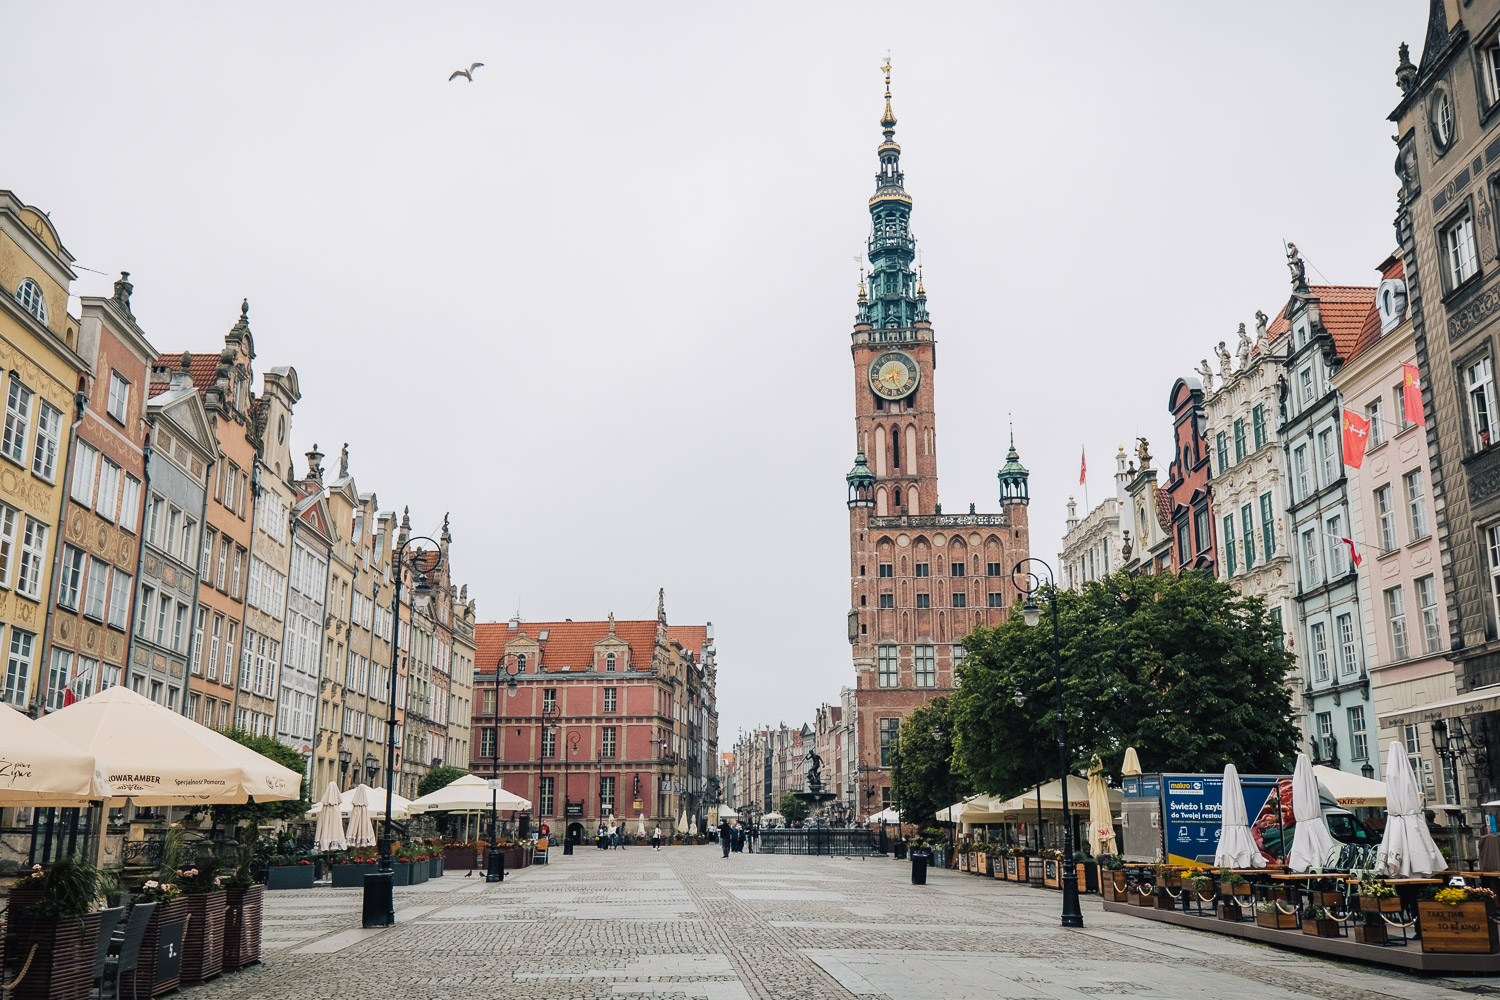 Długi Targ (The Long Market) with the 15th-century Town Hall and the Neptune's Fountain | Gdańsk, Poland